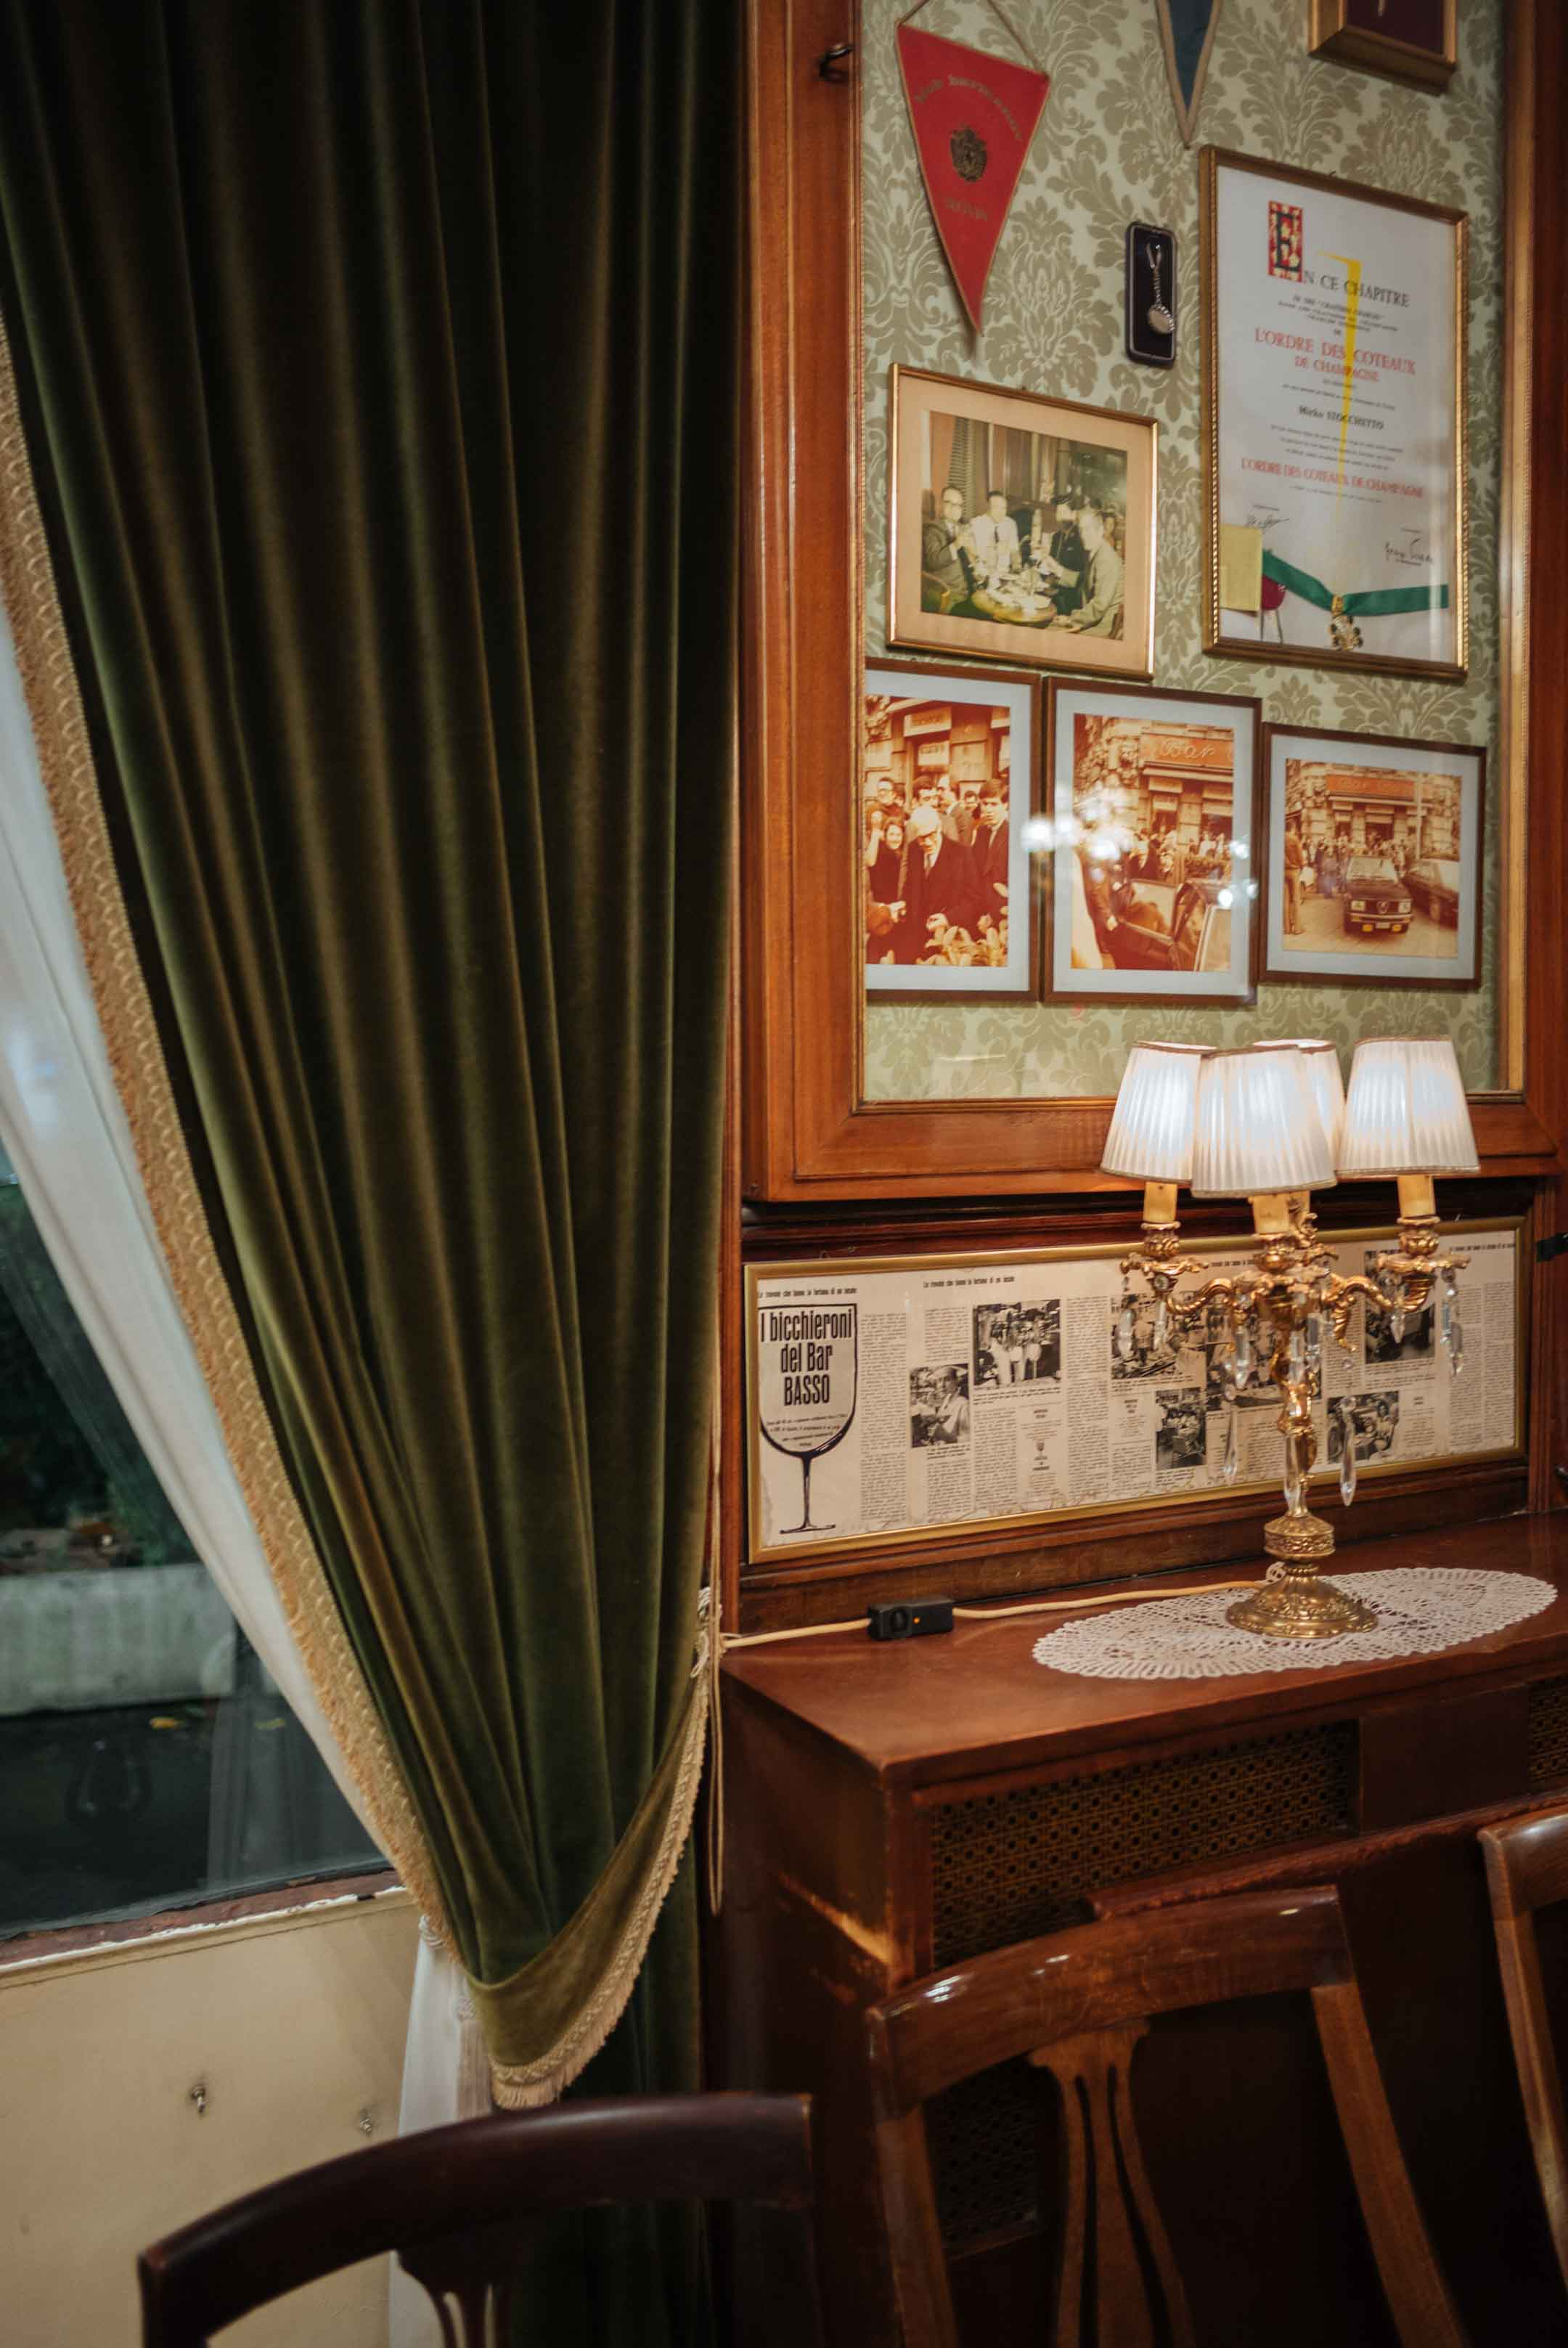 Visit Bar Basso in Milan, where the Negroni sbagliato was invented